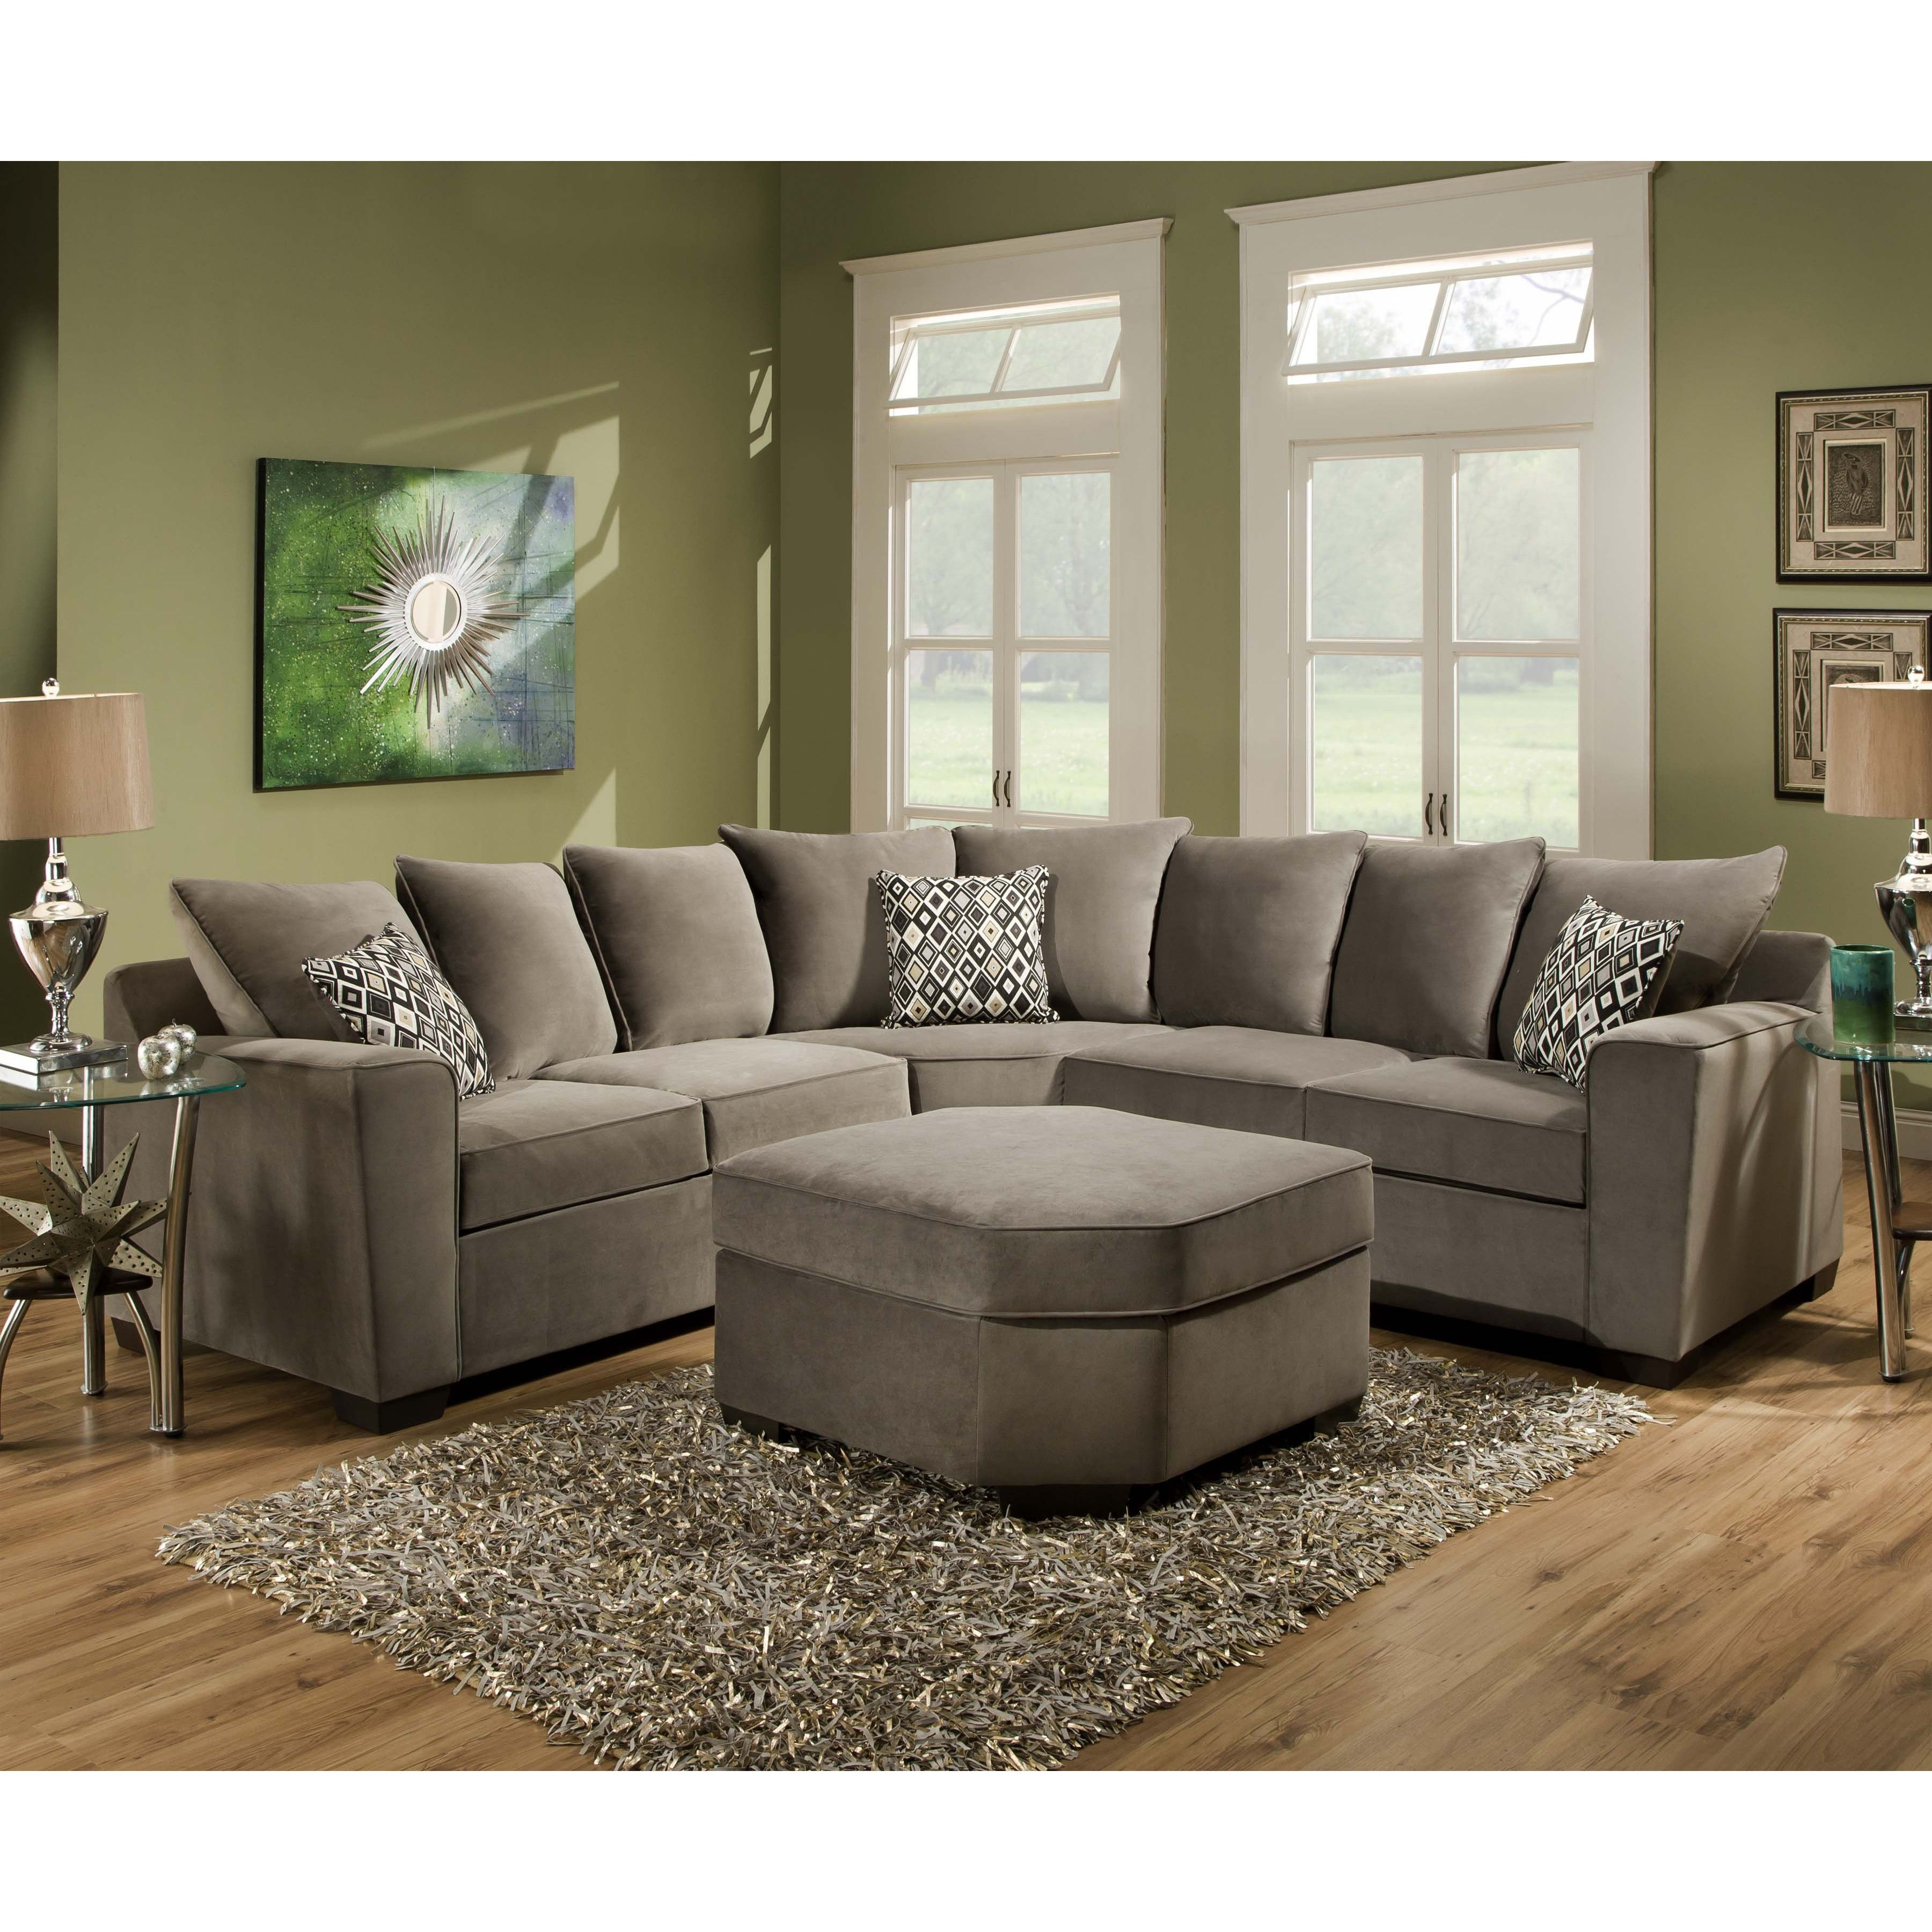 Simmons Upholstery Roxanne Wedge Ottoman $375  sc 1 st  Pinterest : simmons upholstery sectional - Sectionals, Sofas & Couches